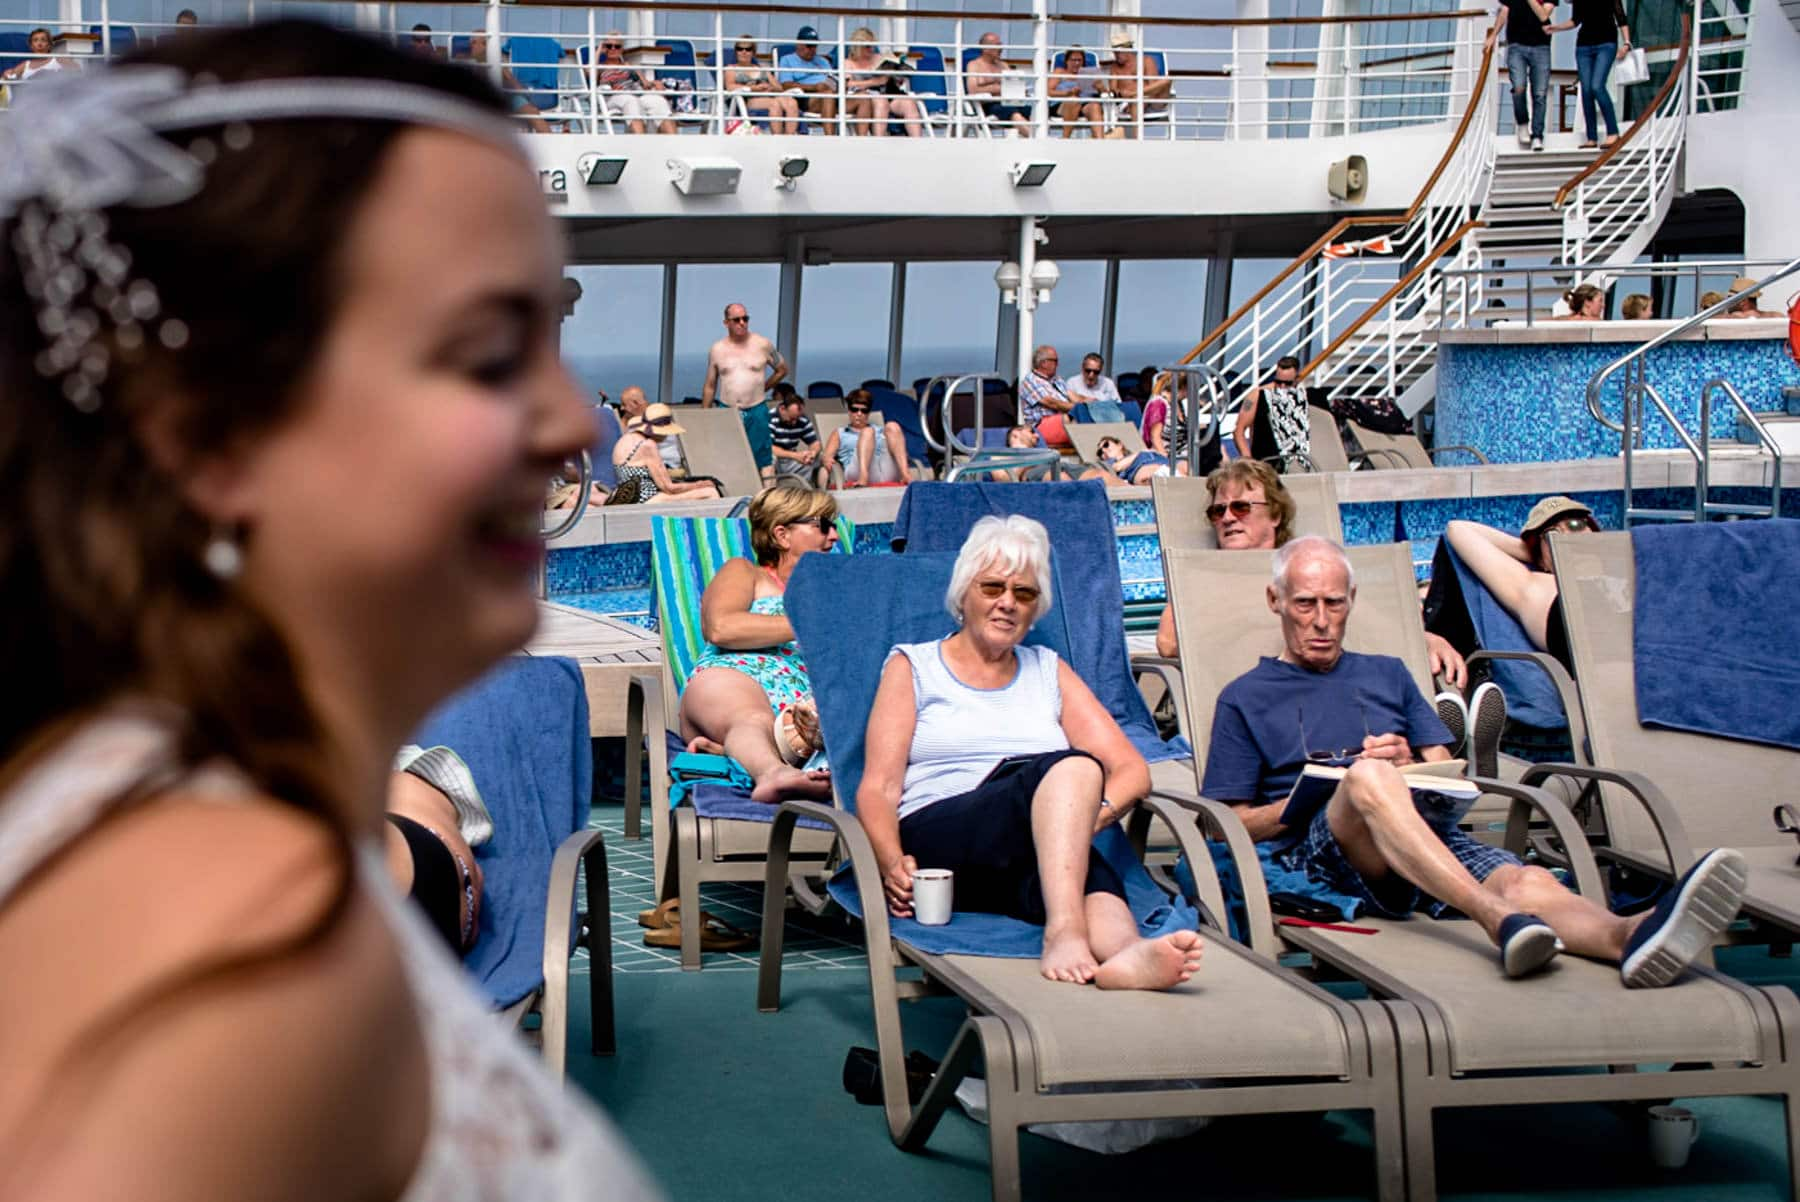 Cruise ship goers watch in confusion as a bride walks past